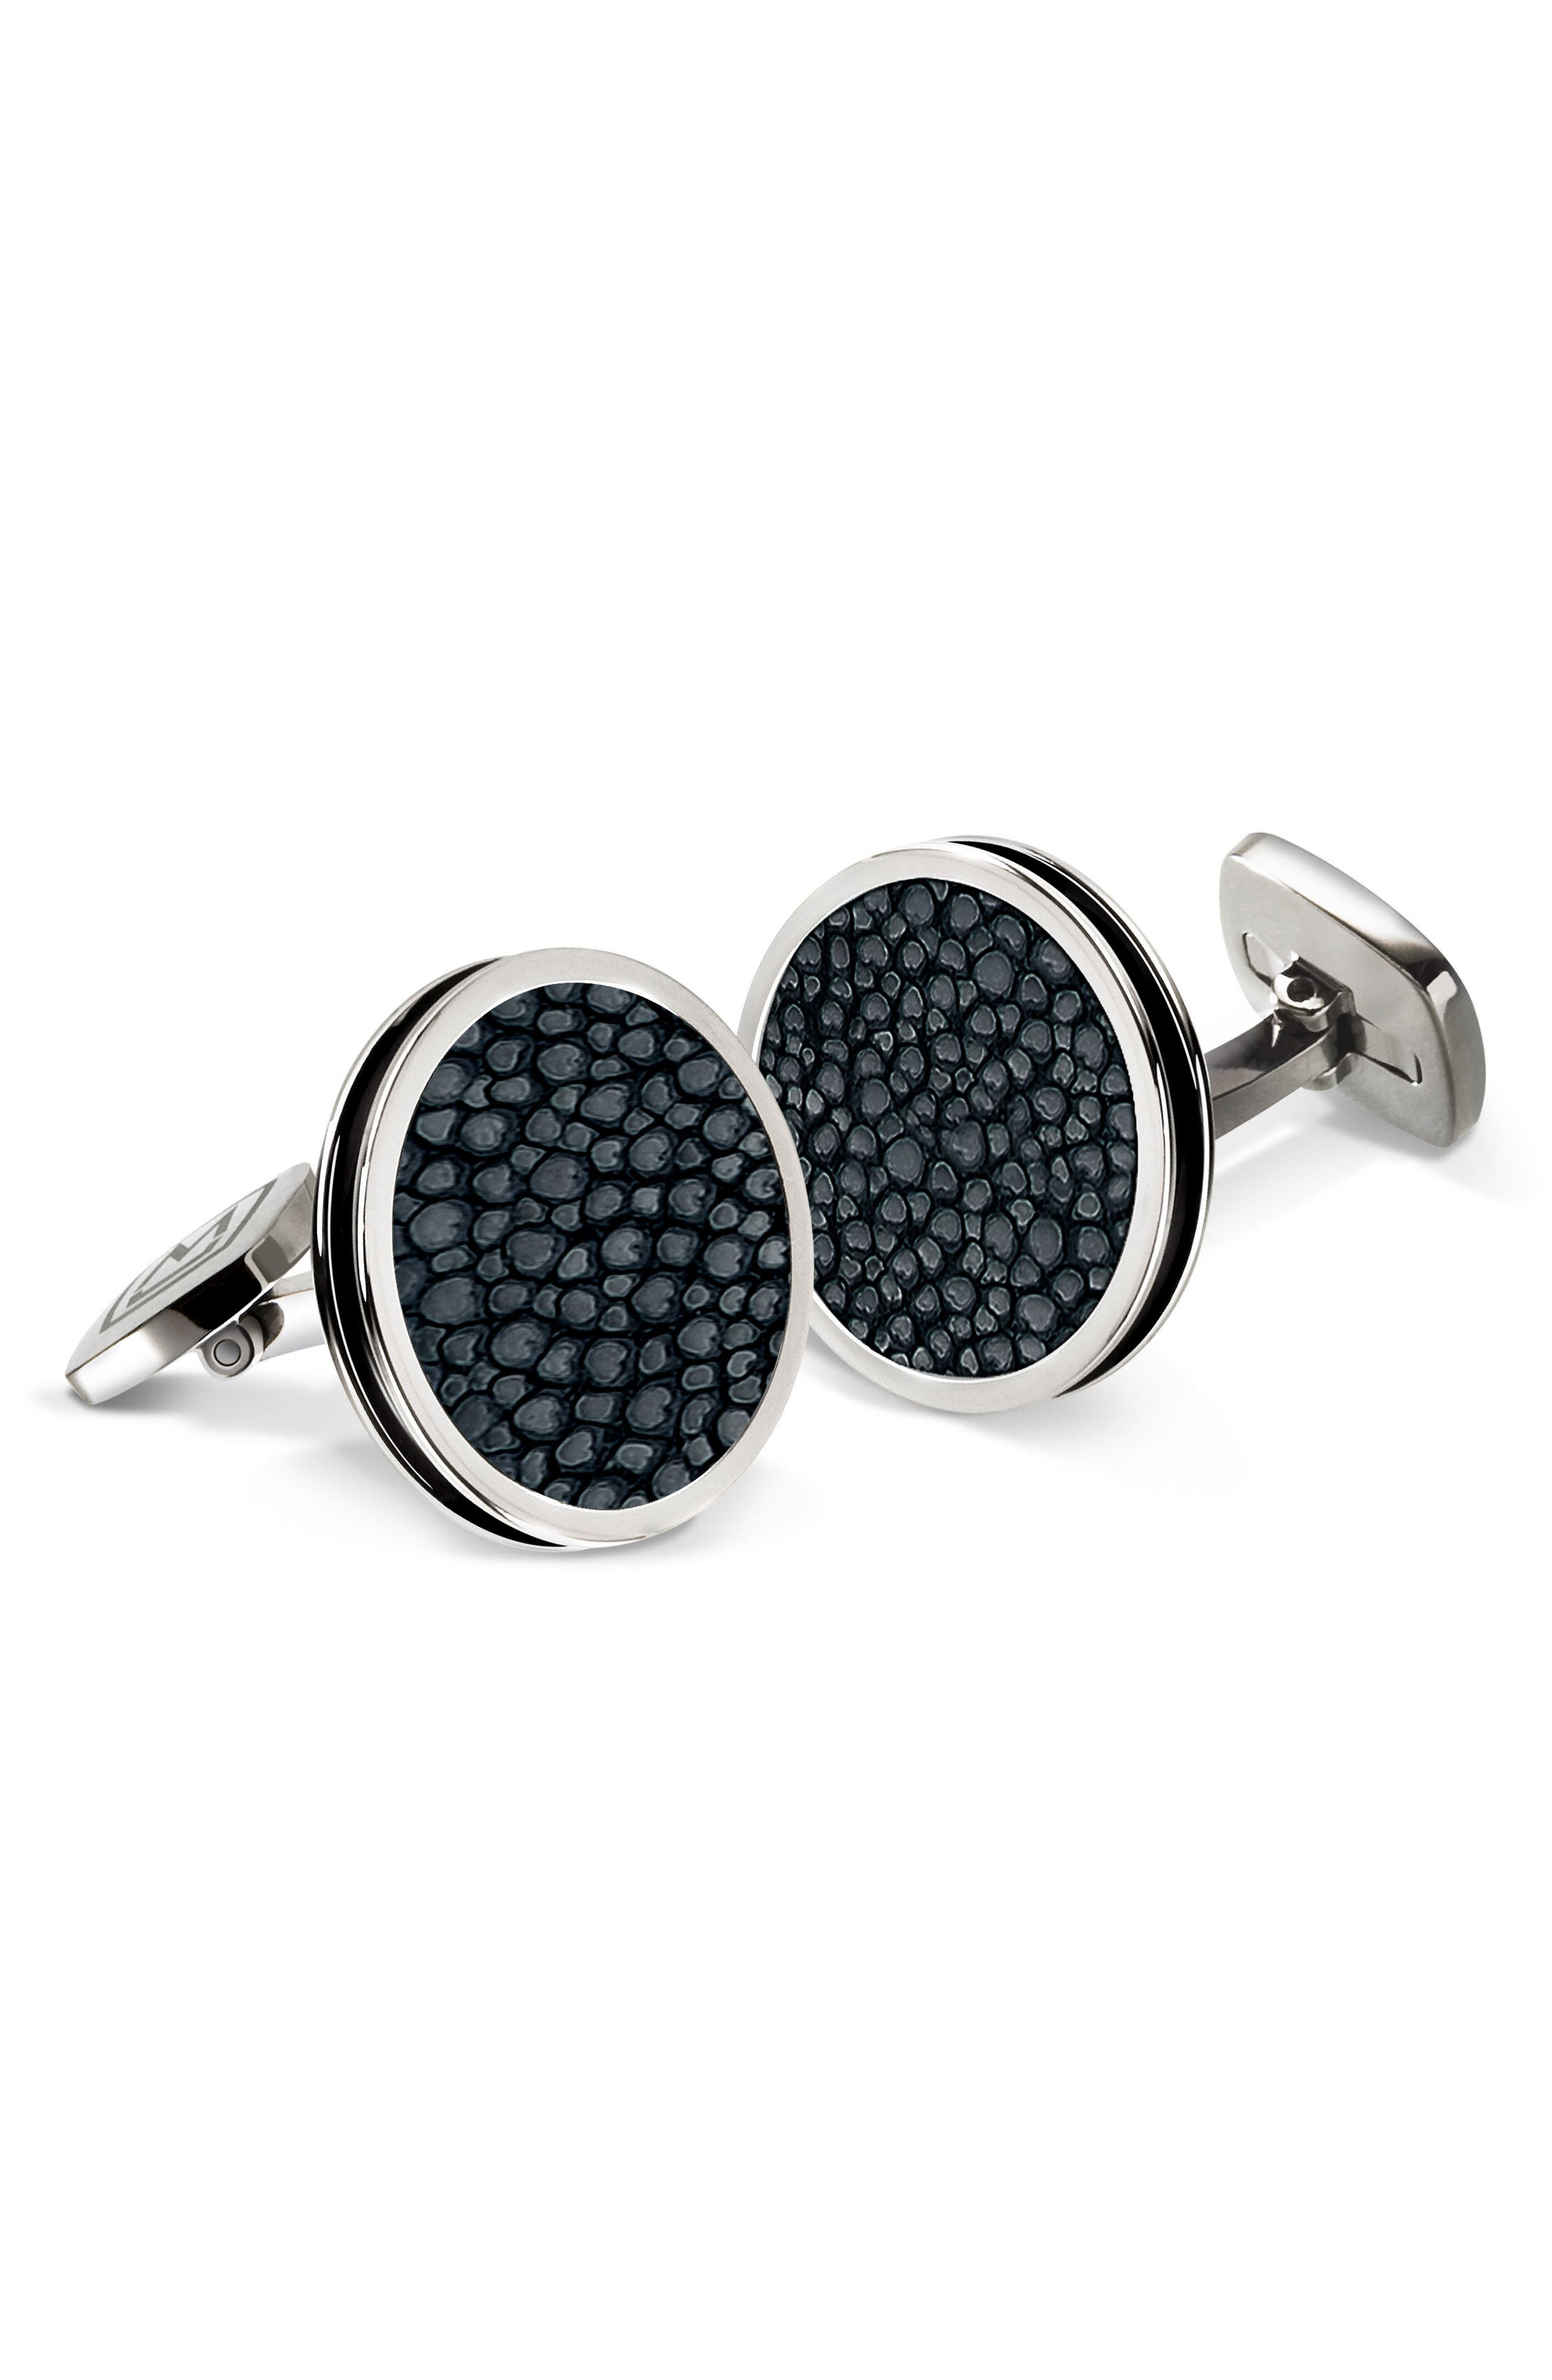 Stingray Cuff Links,                         Main,                         color, BLACK